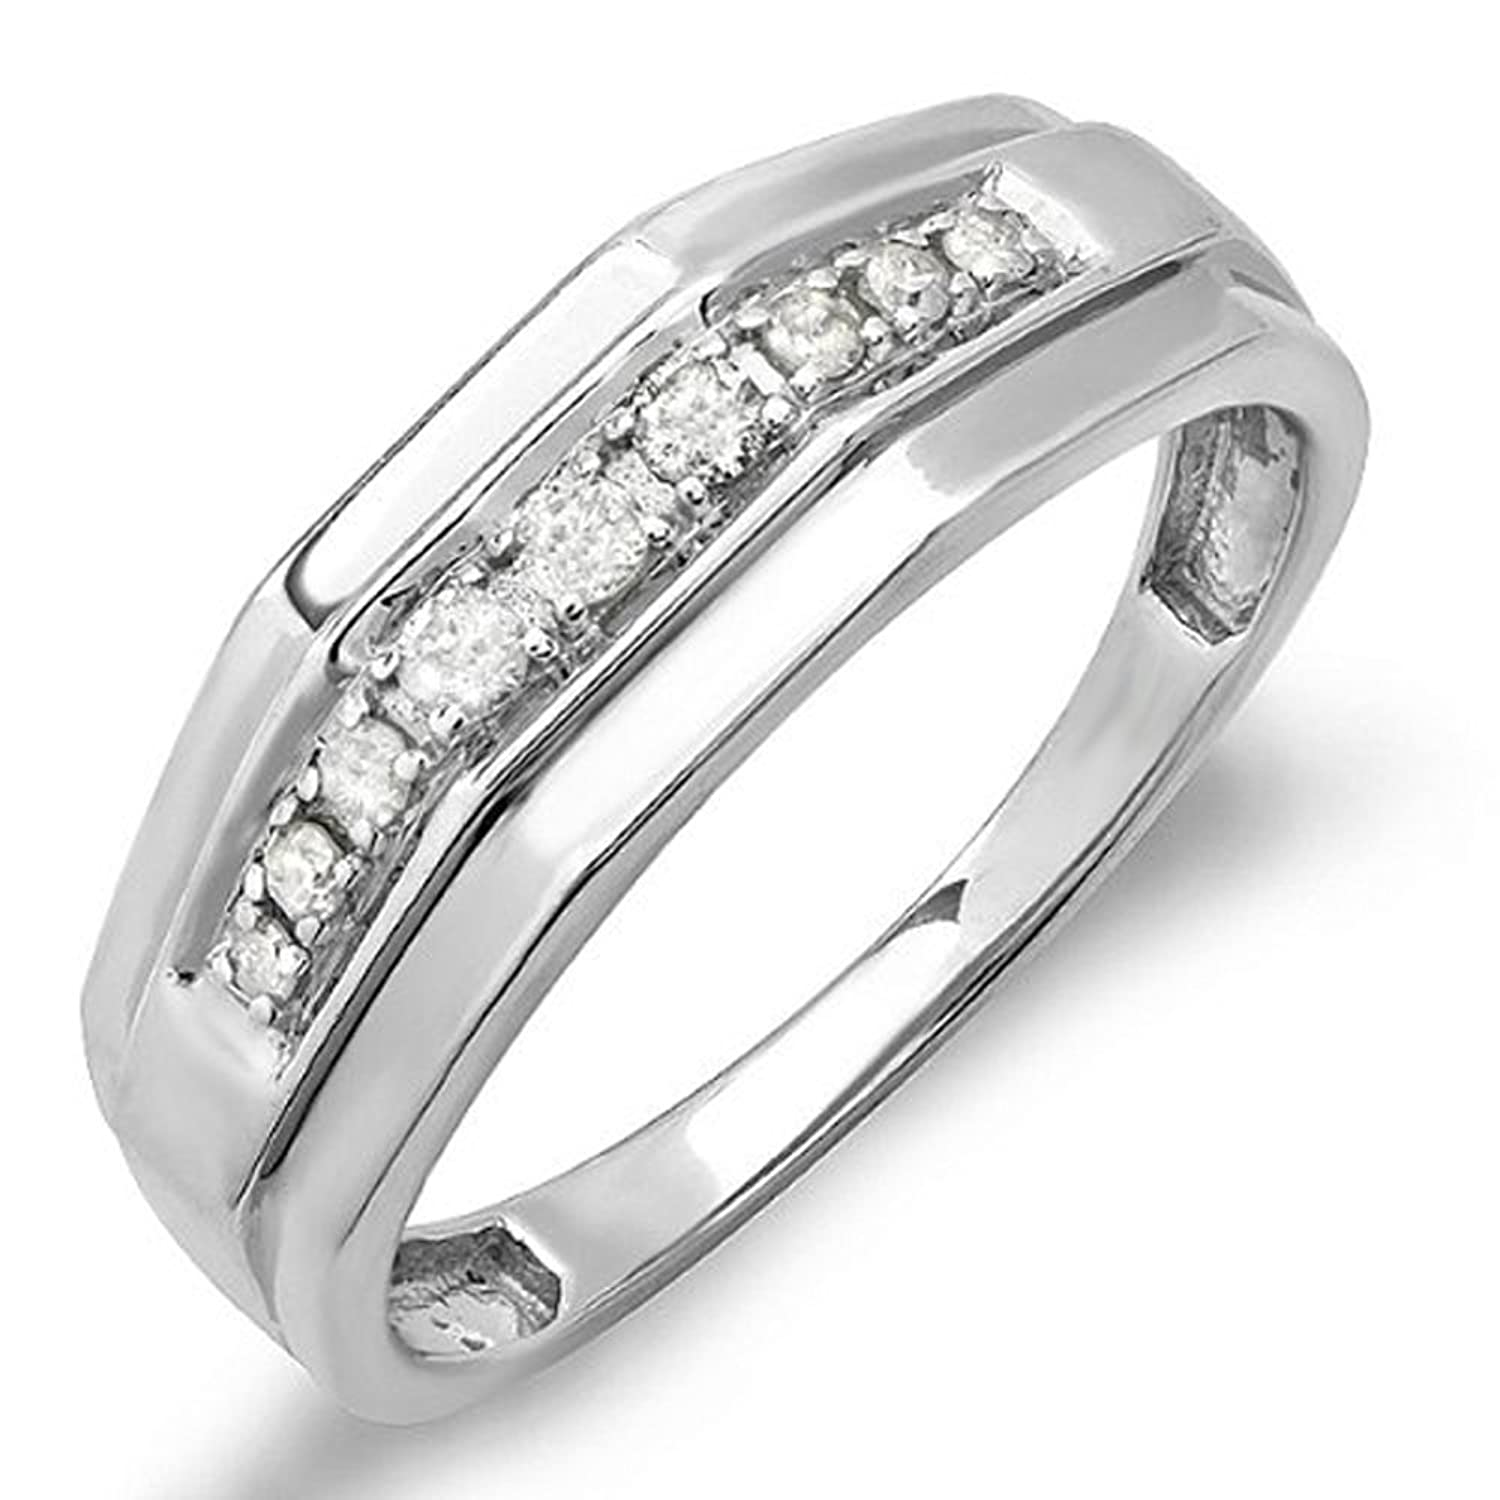 0.25 Carat (ctw) Sterling Silver White Diamond Mens Wedding Anniversary Band 1/4 CT